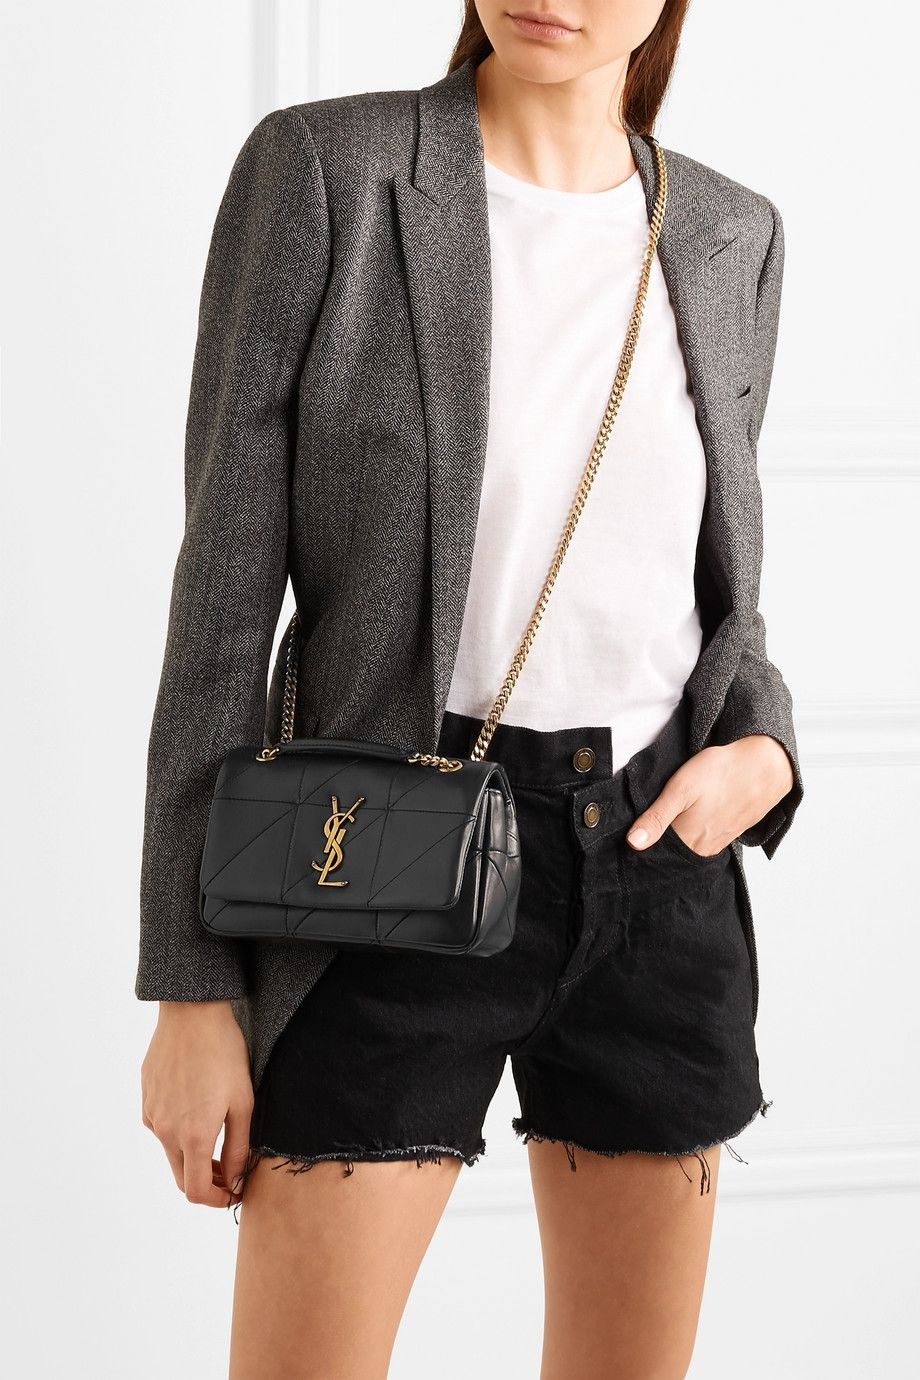 3f725897068 Saint Laurent Jamie small quilted leather shoulder bag $1,950 | Bags ...